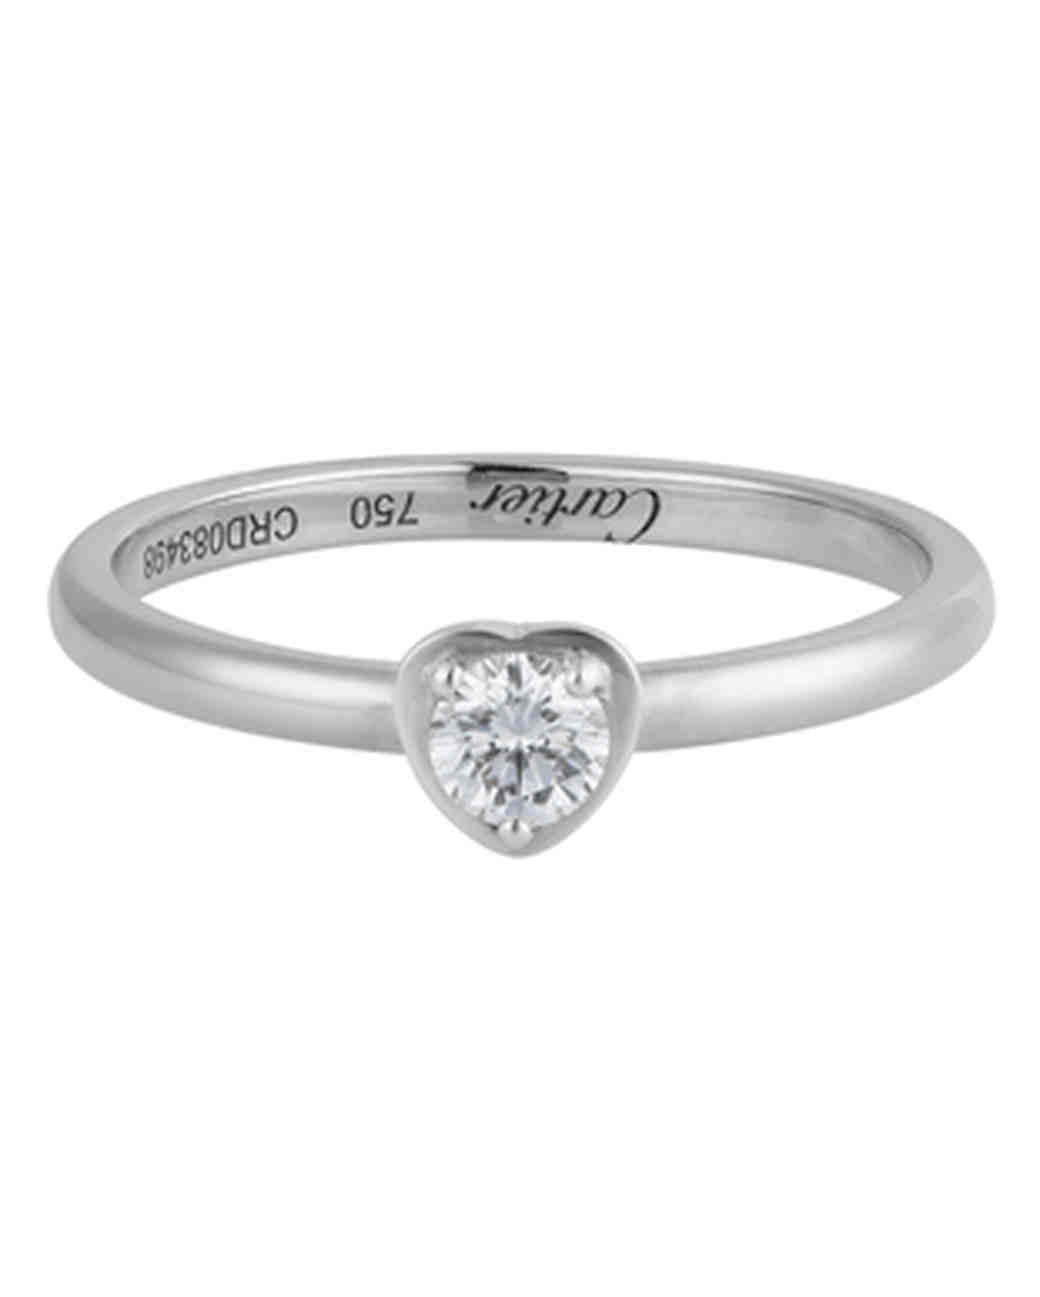 pin in available halo engagement ring at pear shaped bluenile com rings diamond platinum